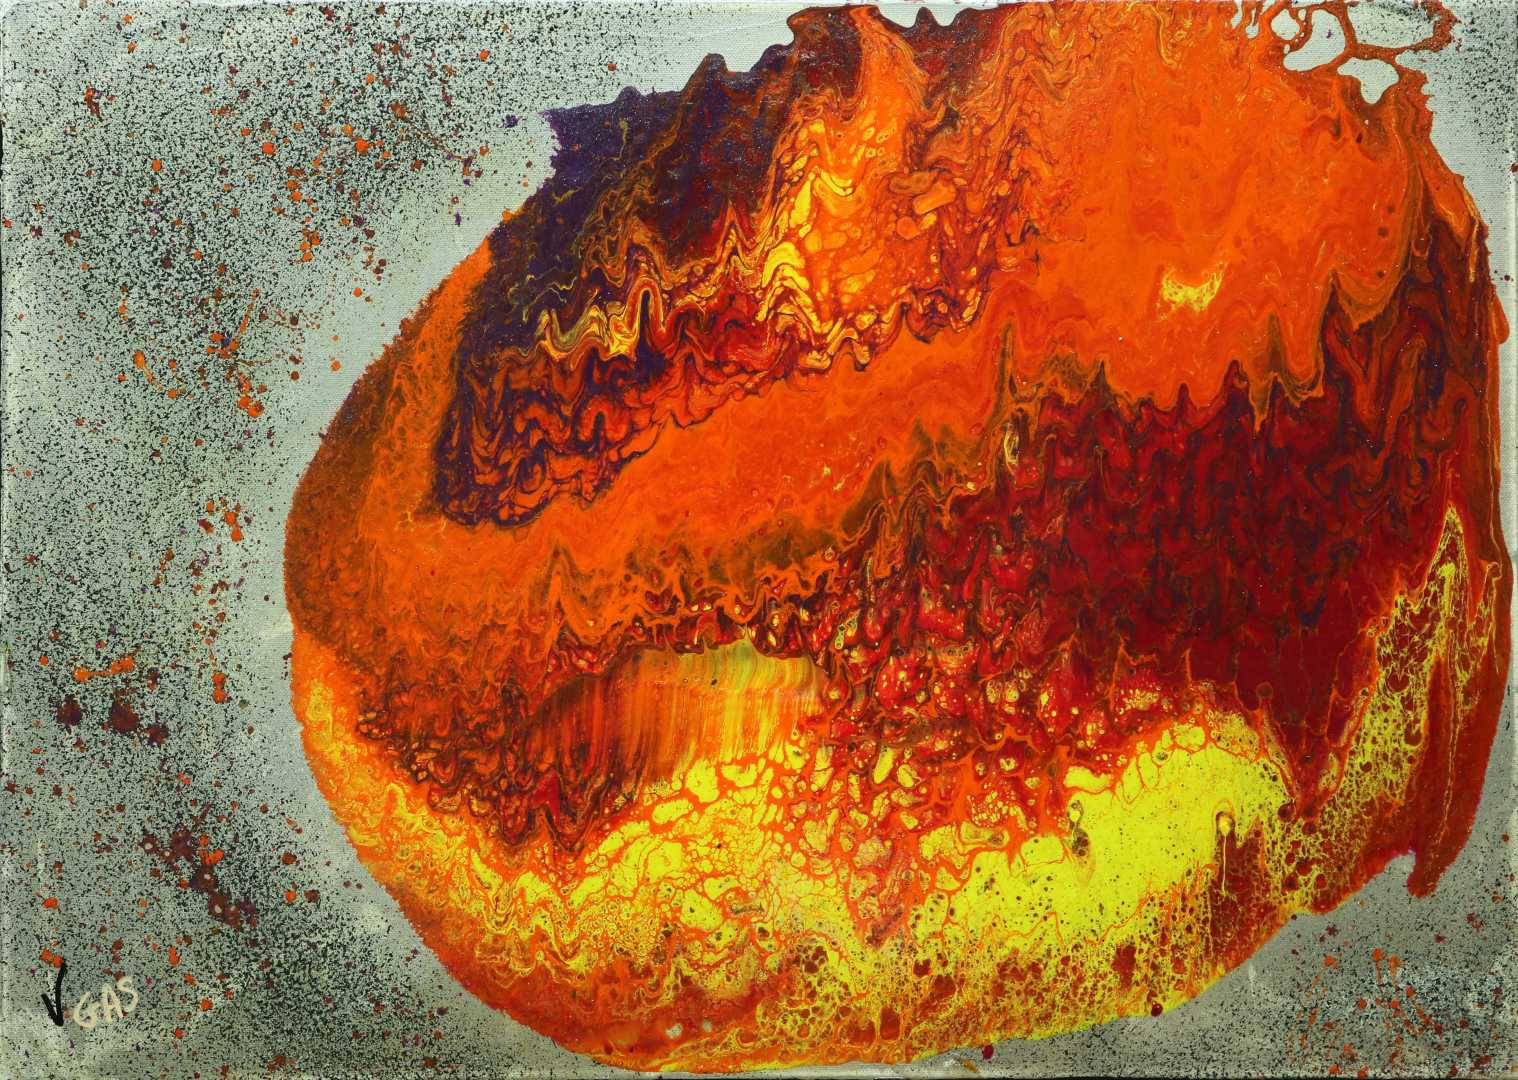 Magnificient Explosion Peinture, Acrylique, Art abstrait, Toile, Art abstrait, explosion, univers, coloré, planète, orange, jaune, violet